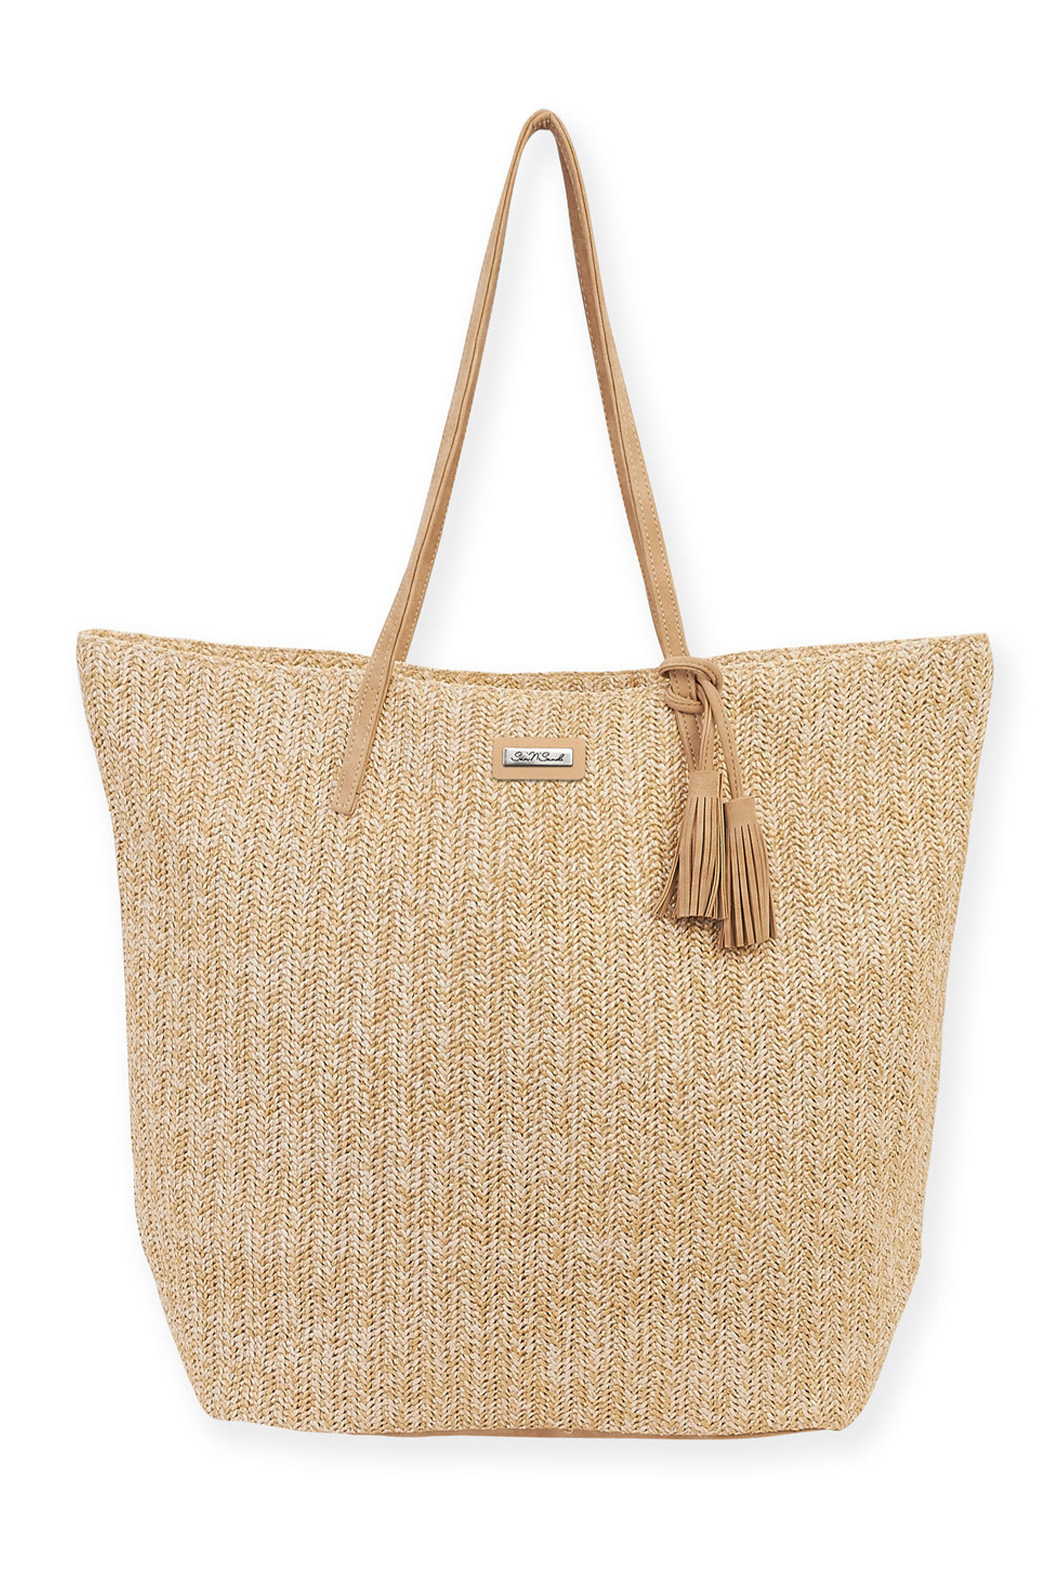 sun and sand Dapple Shoulder Tote - Front Cropped Image